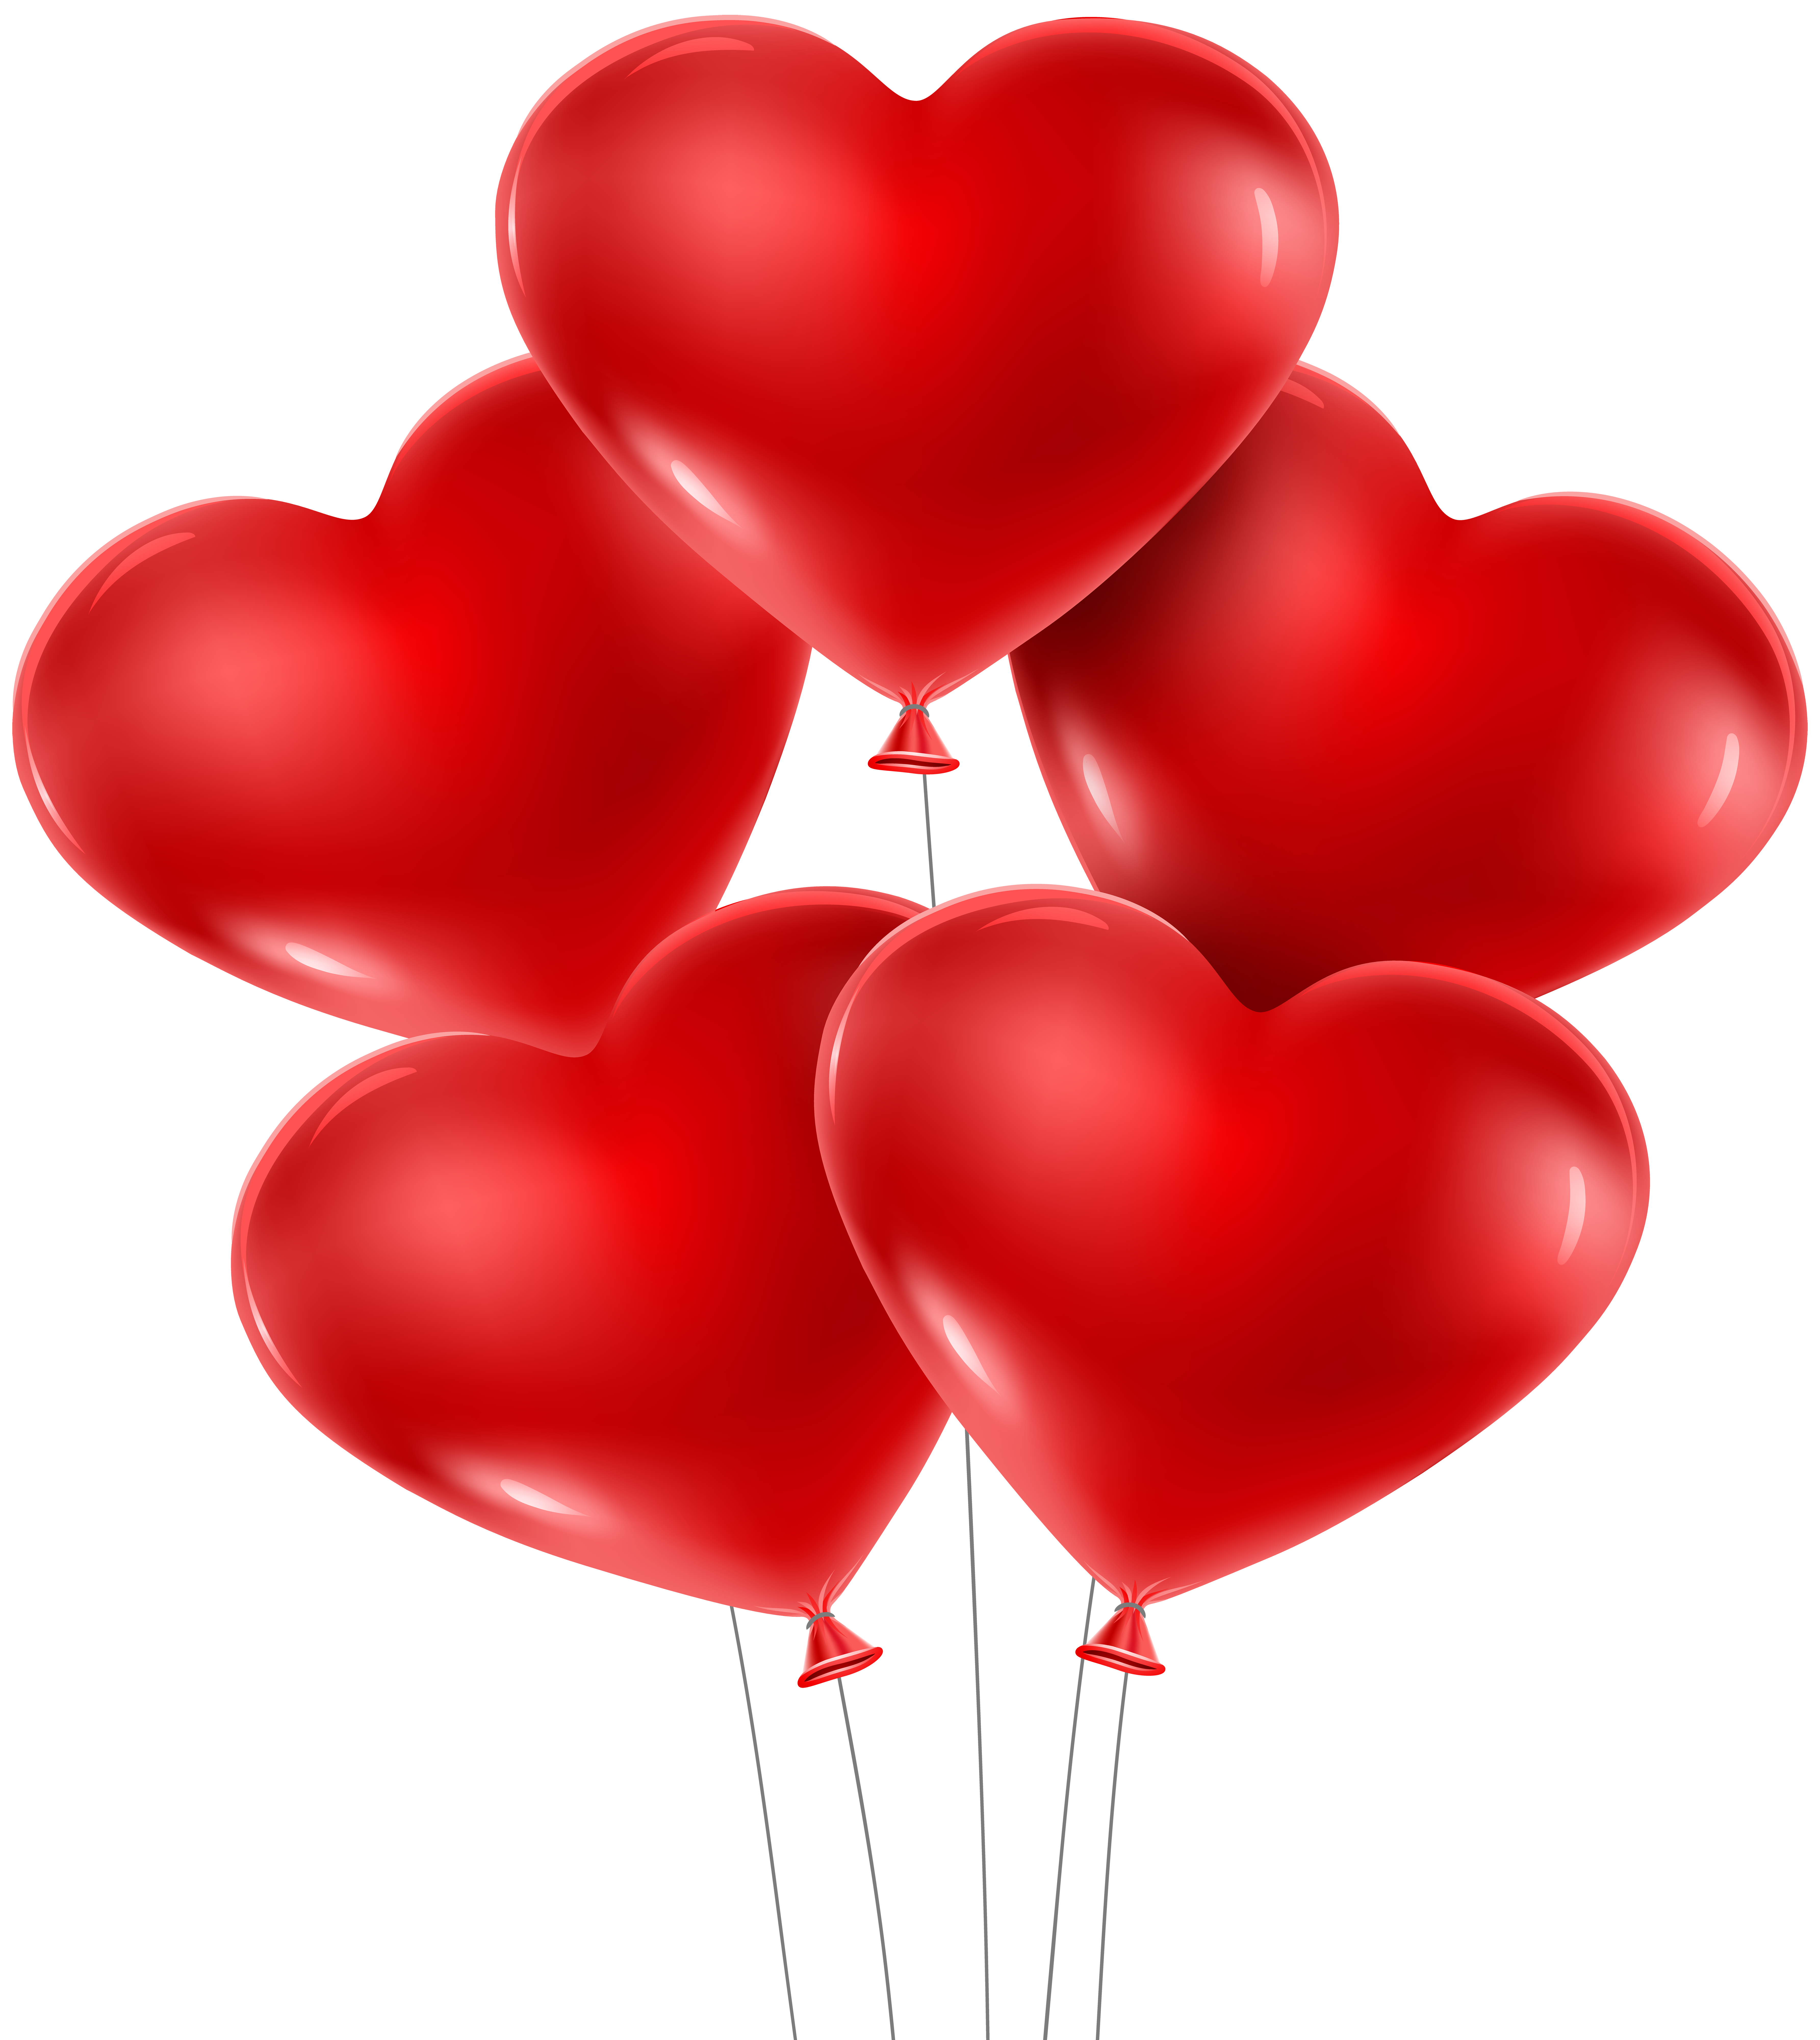 Heart Balloons PNG Clip Art Image.